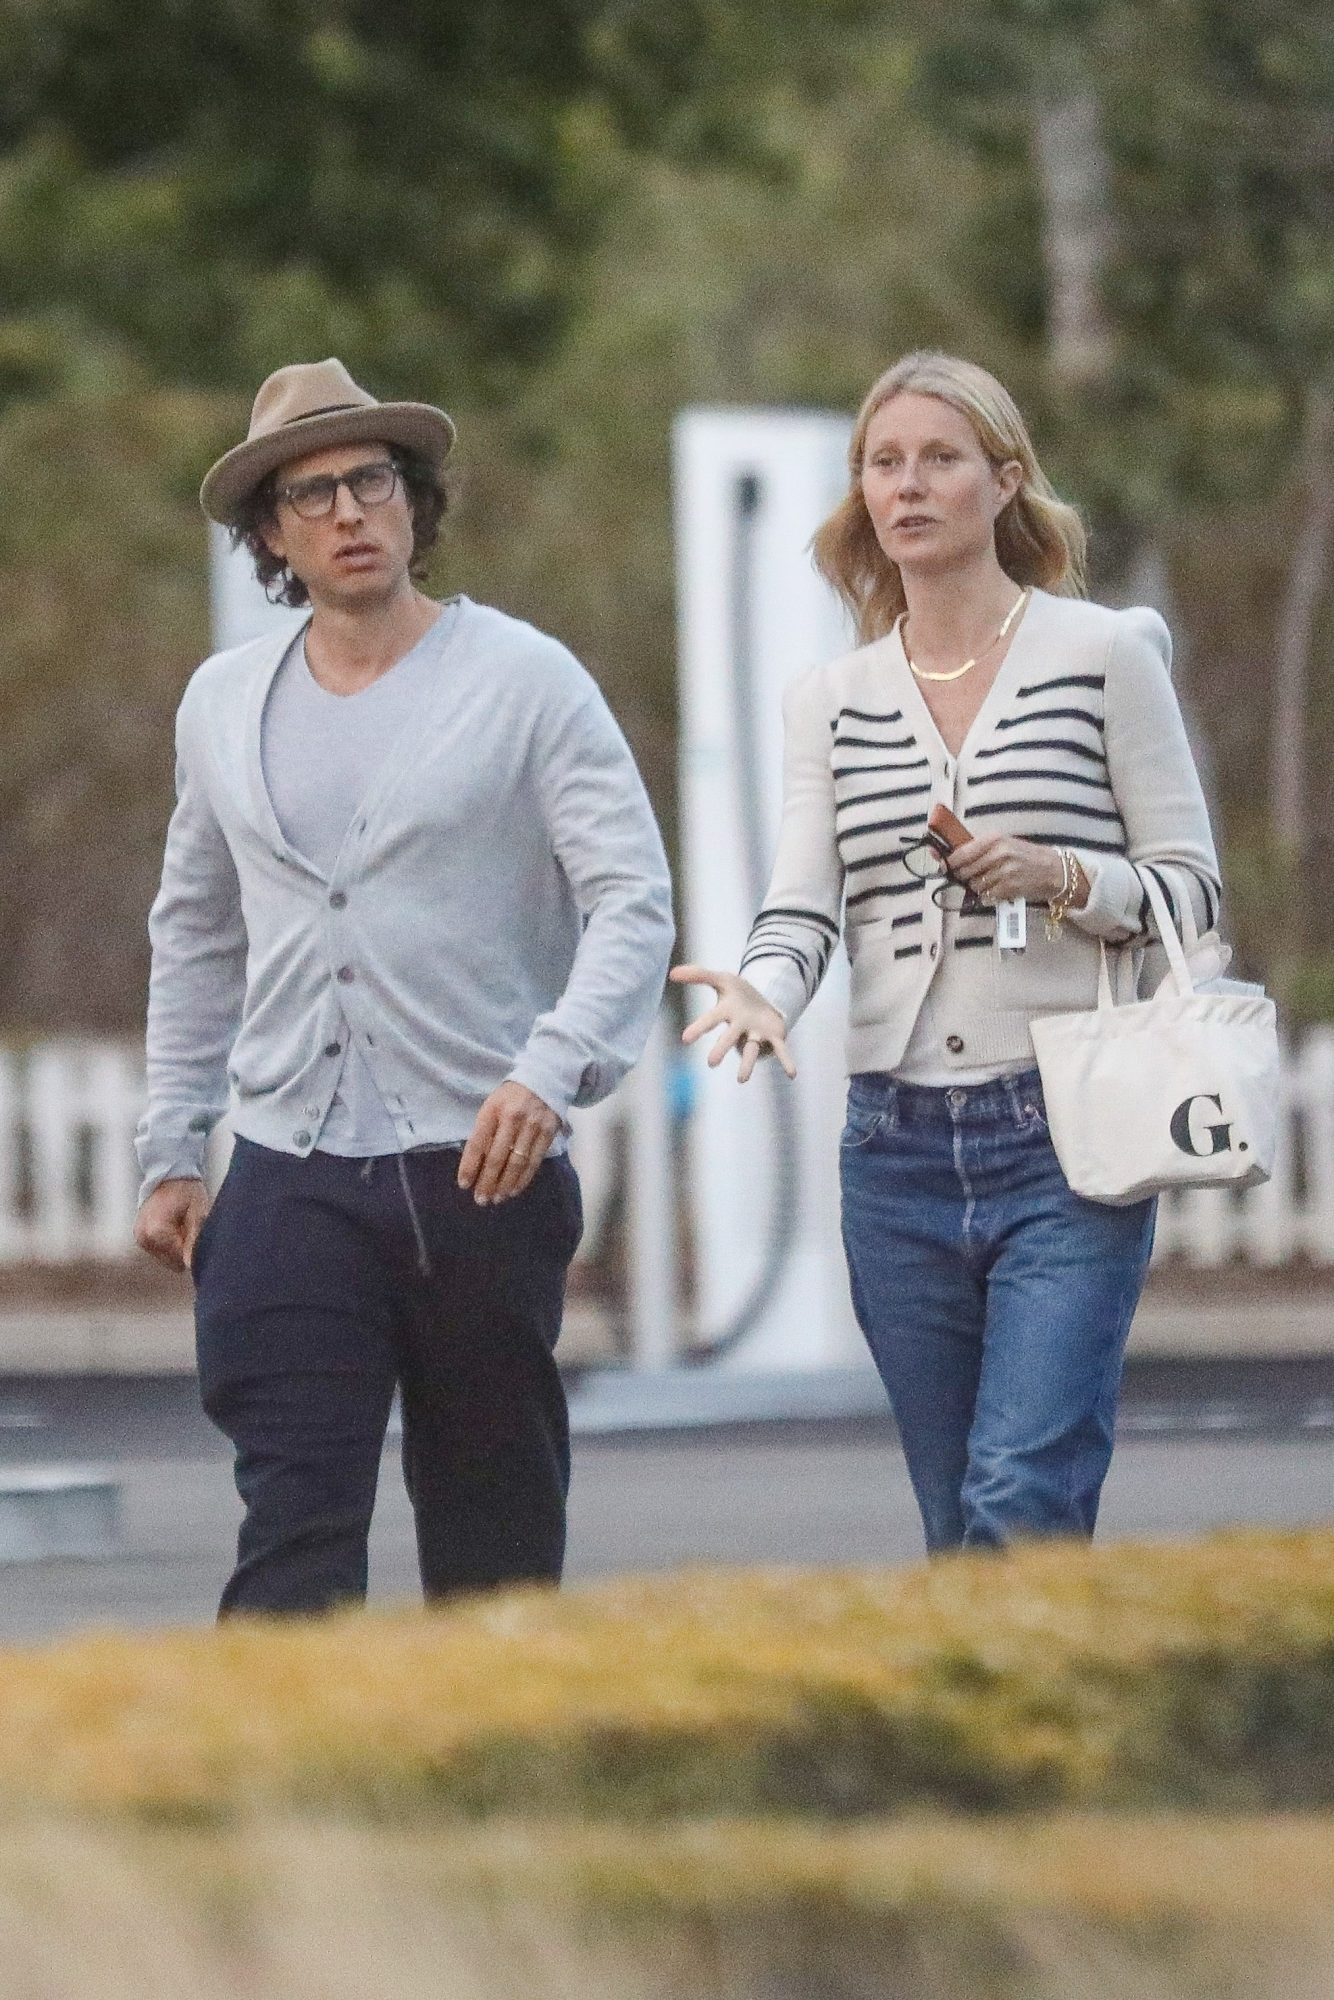 Gwyneth Paltrow Goes Makeup Free & Sported a Sailor Look as she Takes a Stroll with Hubby